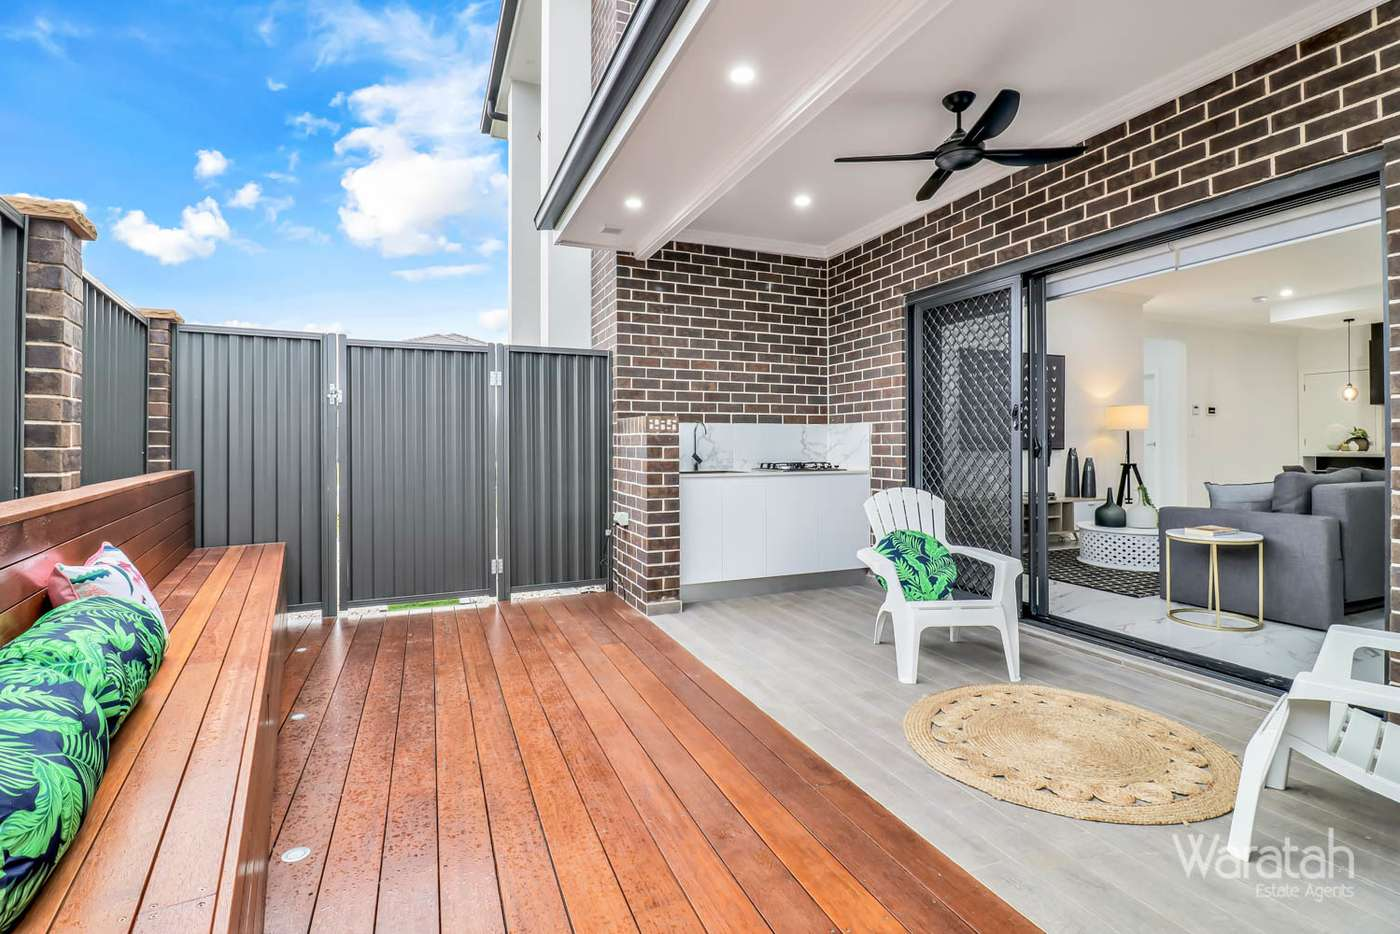 Fifth view of Homely house listing, 24 Deguara Street, Schofields NSW 2762